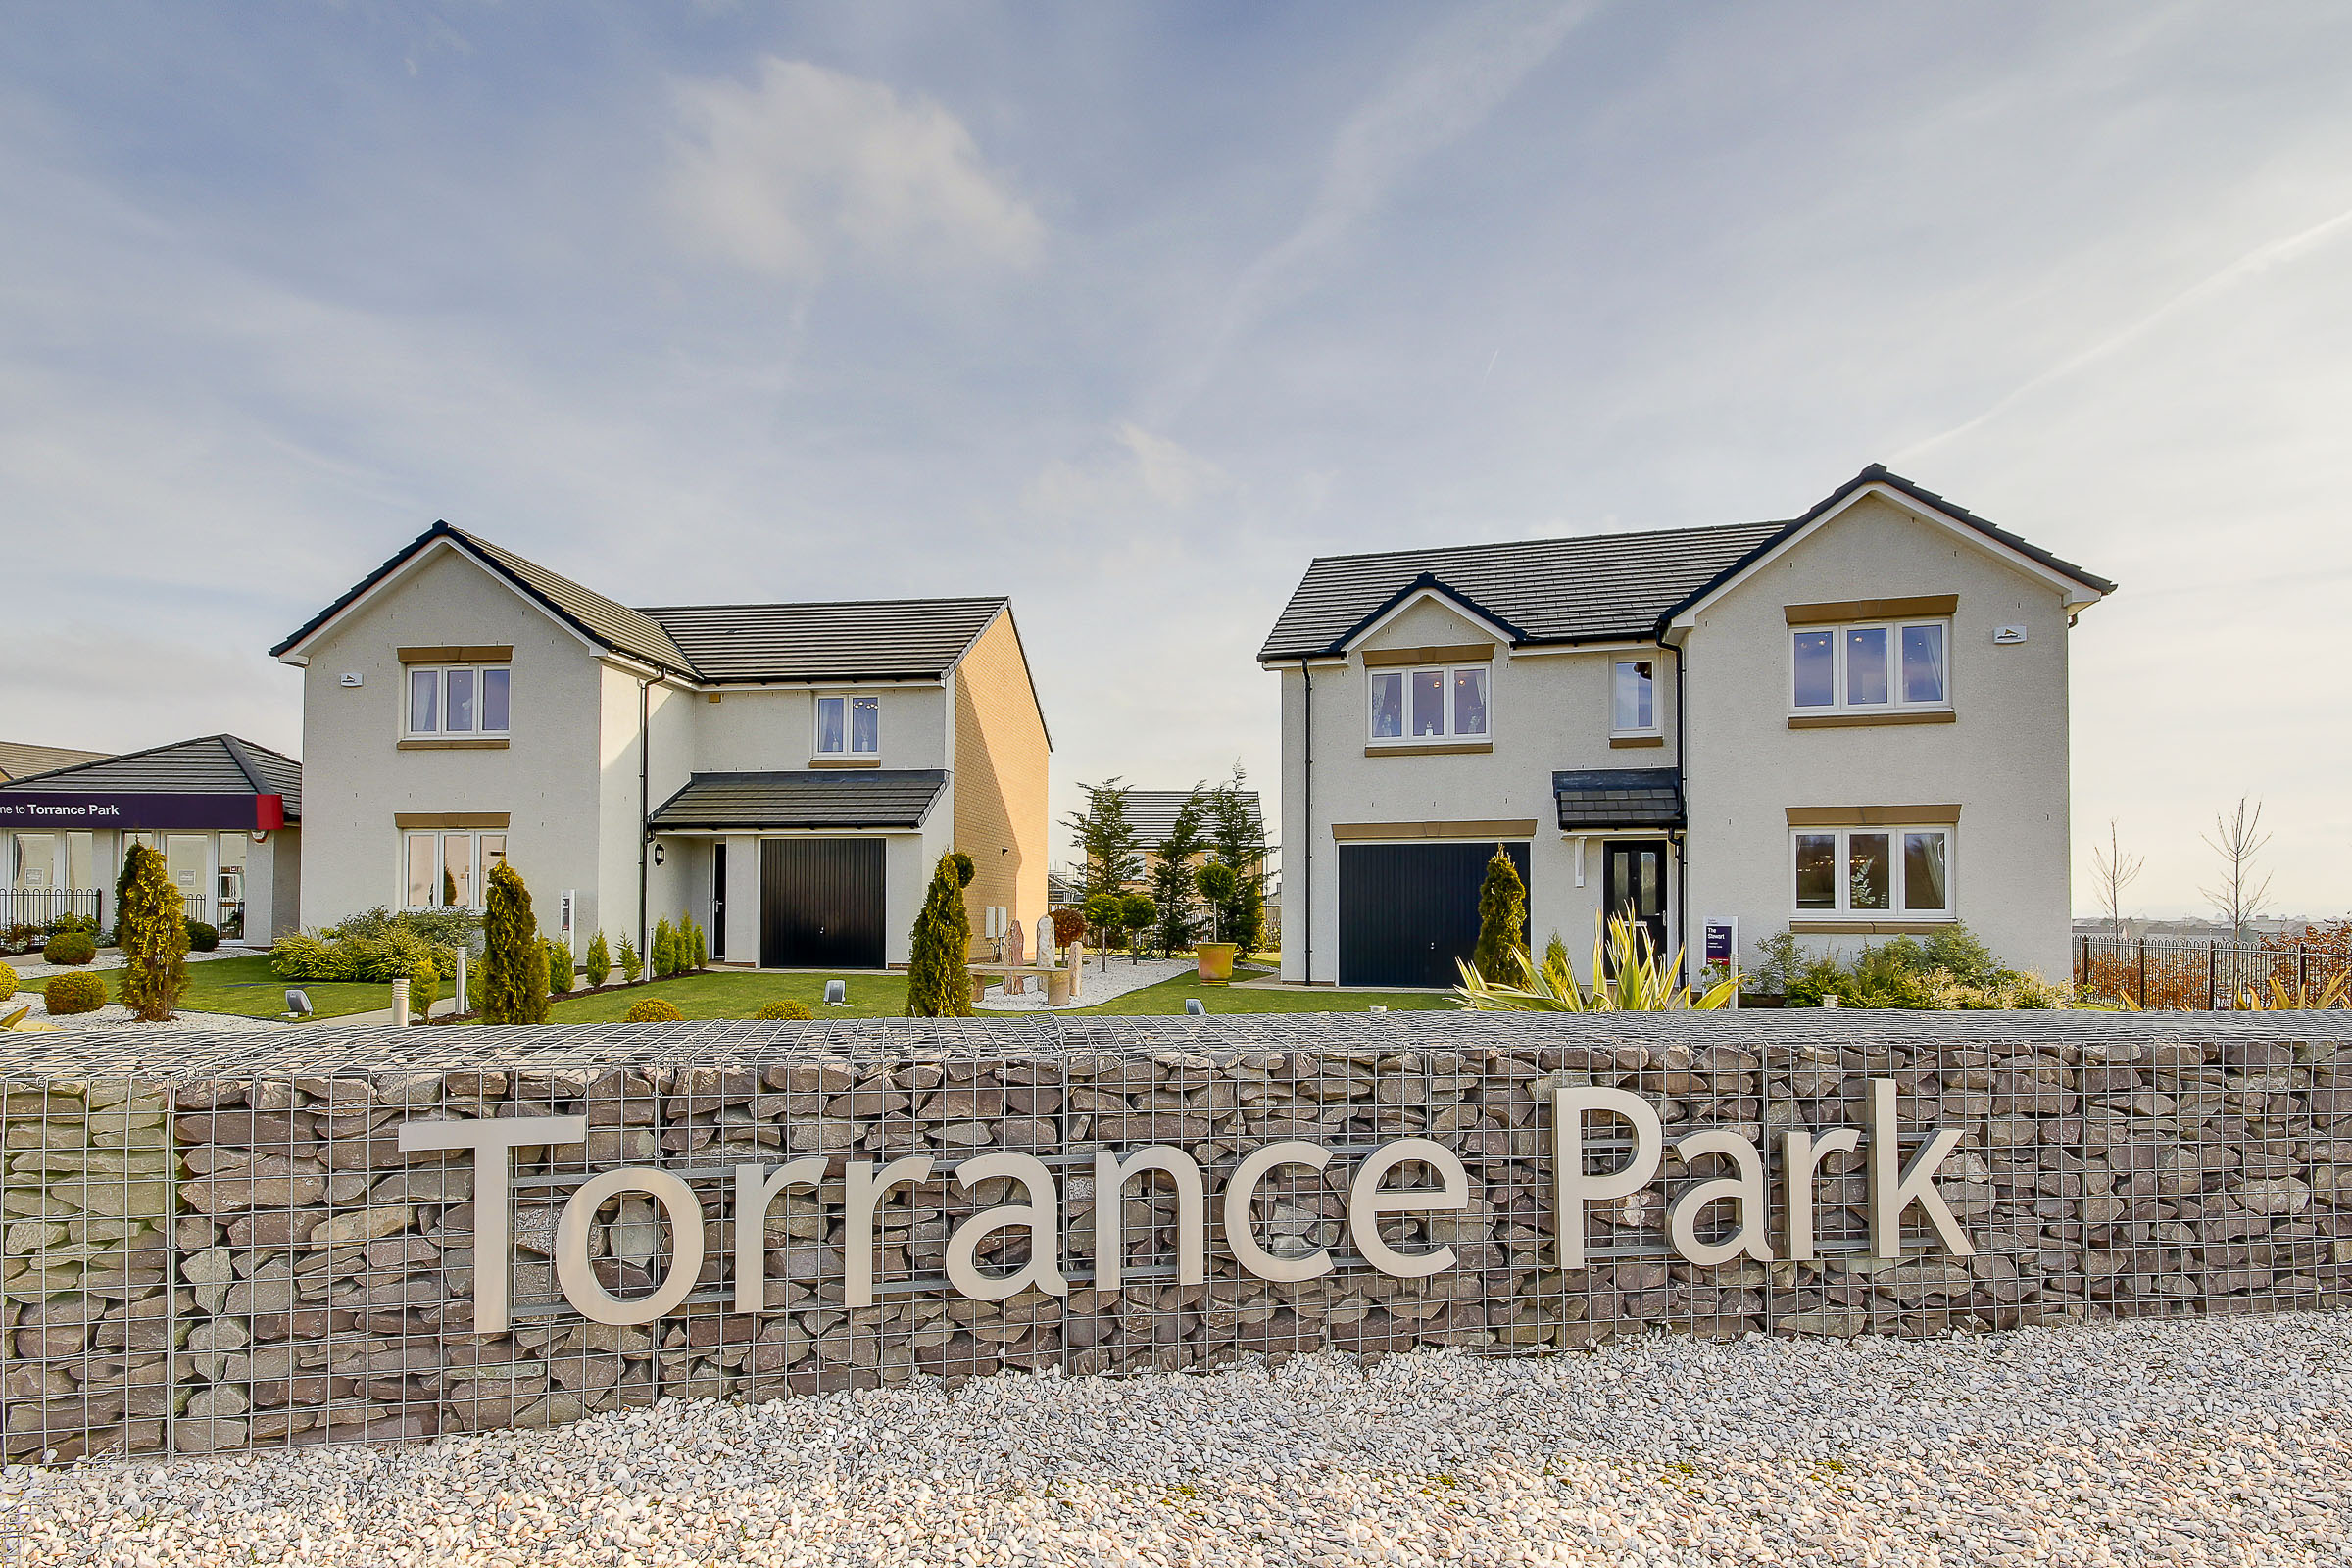 TWWS - Torrance Park - Show Homes